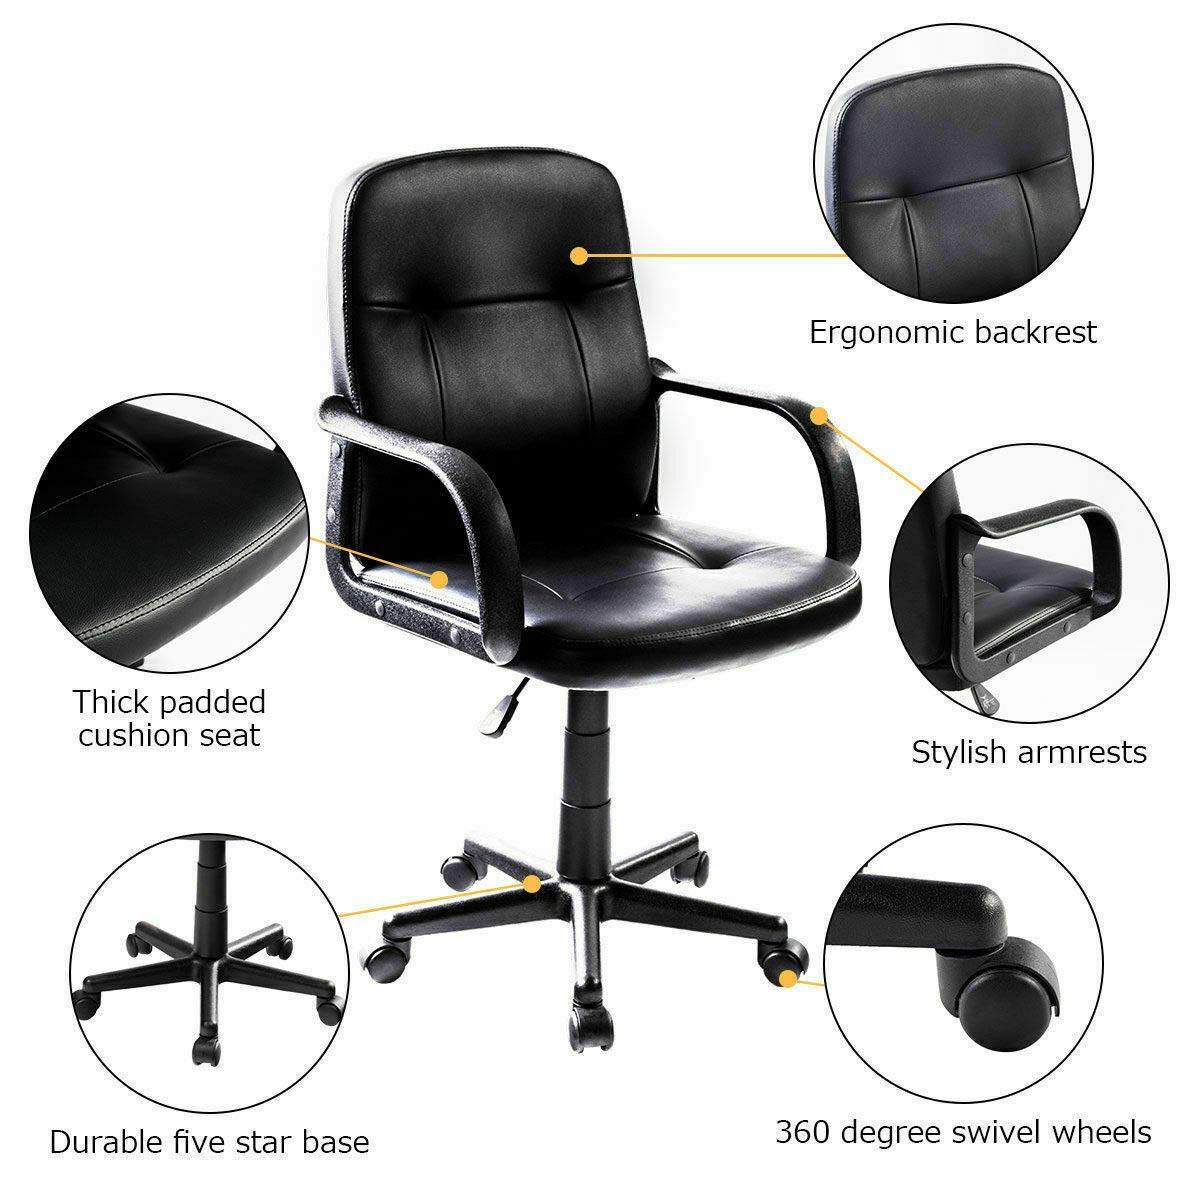 Seleq Compact Black PU Leather Desk Chair for Home Office by Seleq (Image #3)